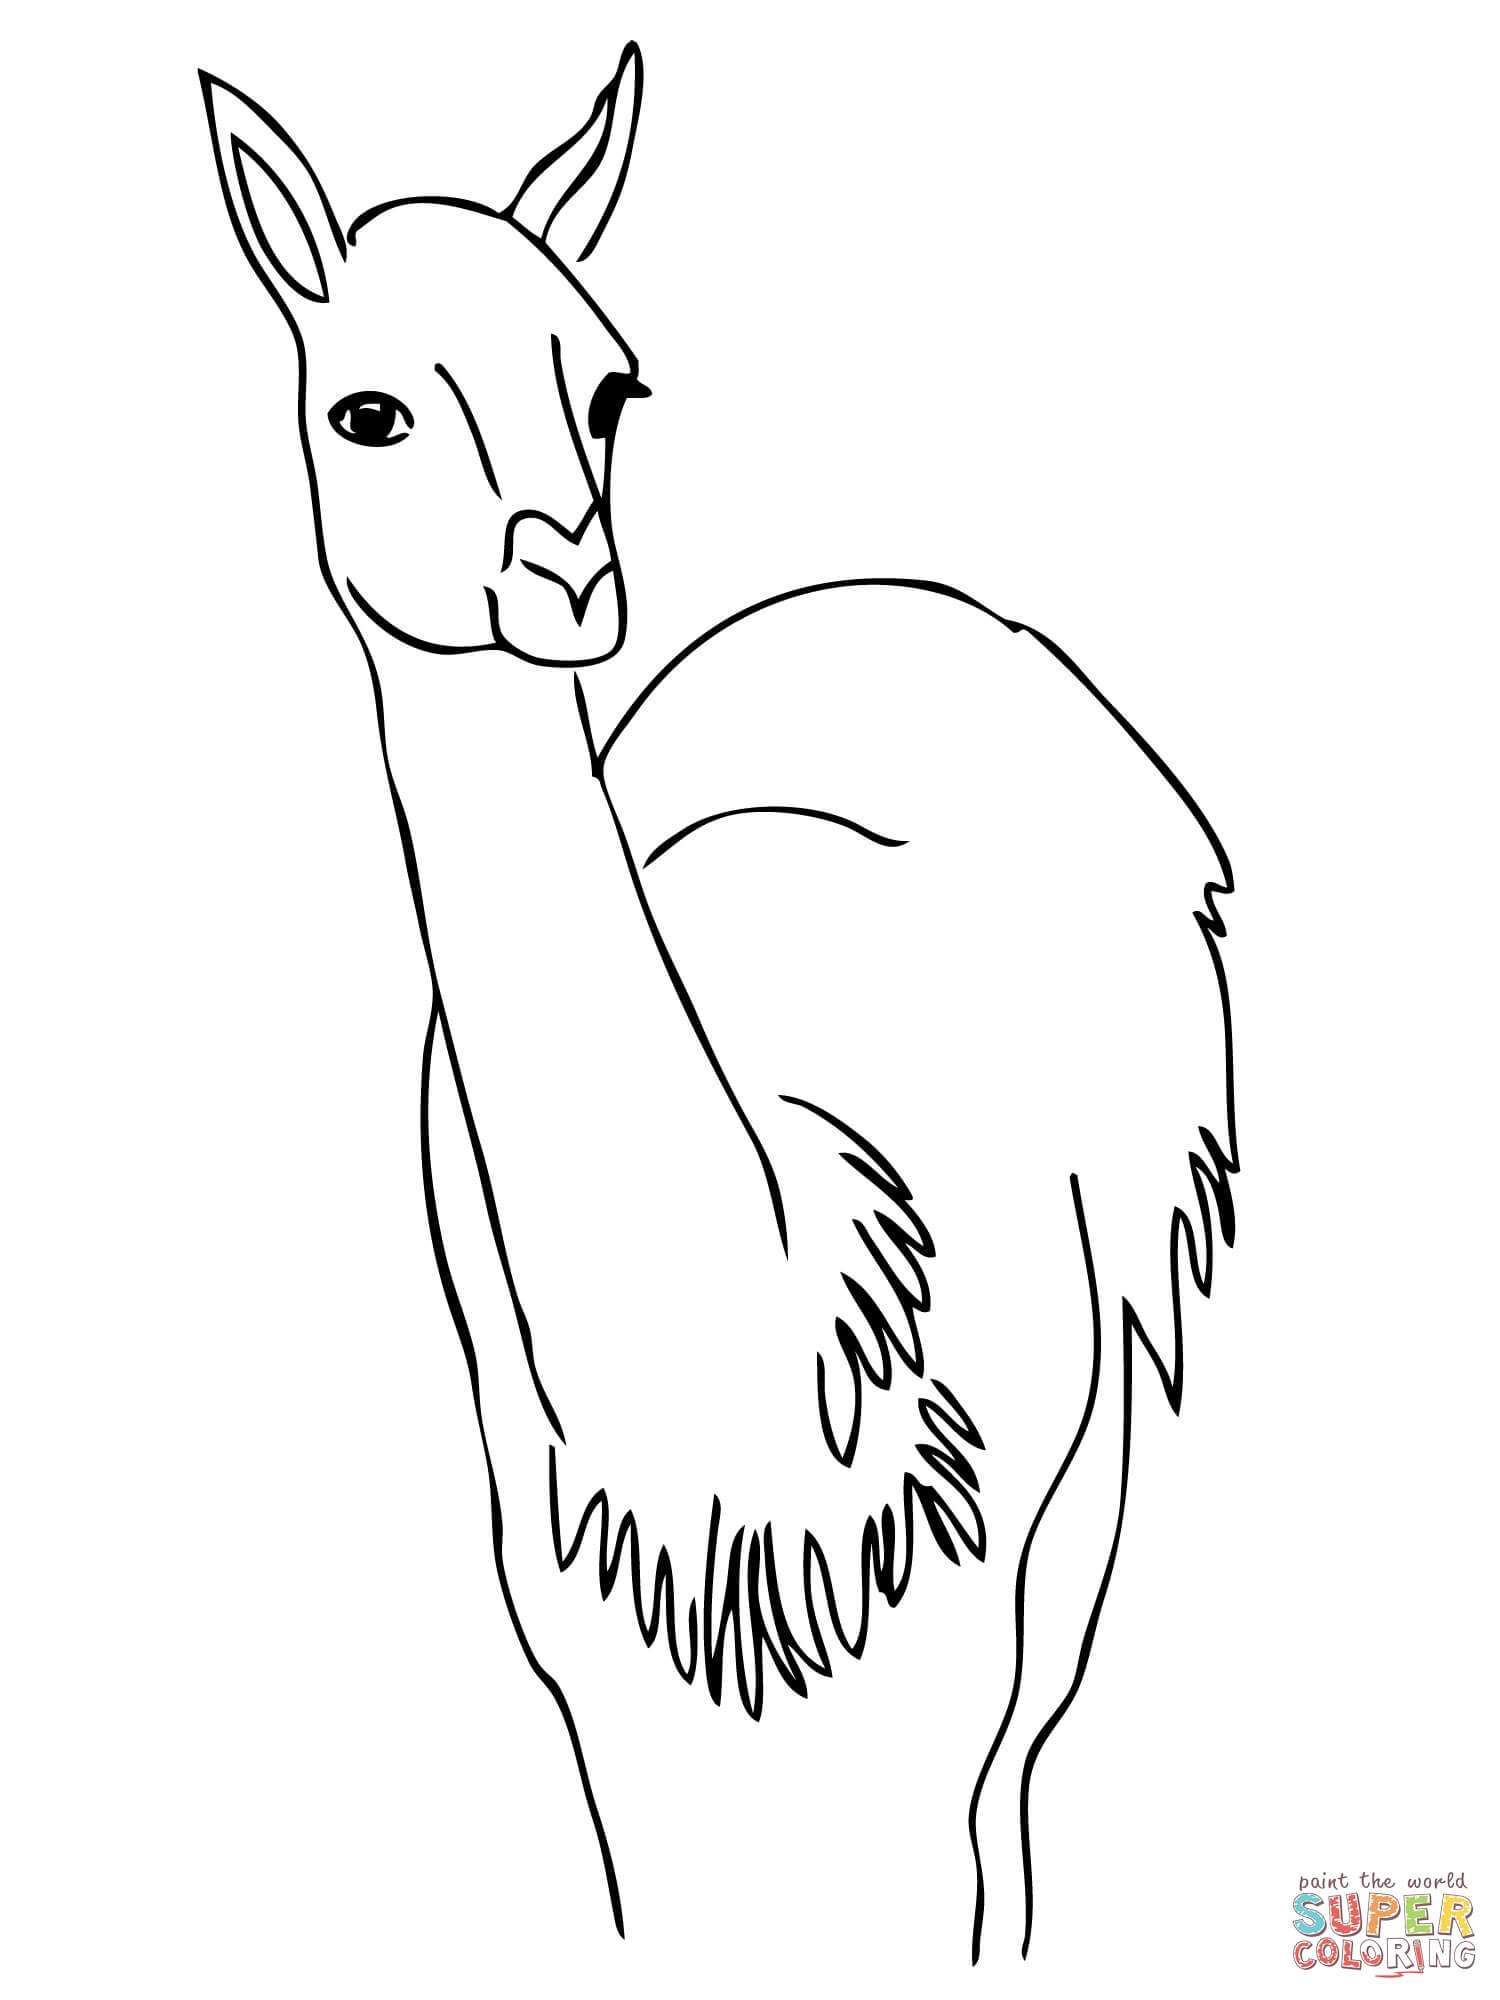 south america coloring pages for kids | South America Coloring Page - Coloring Home